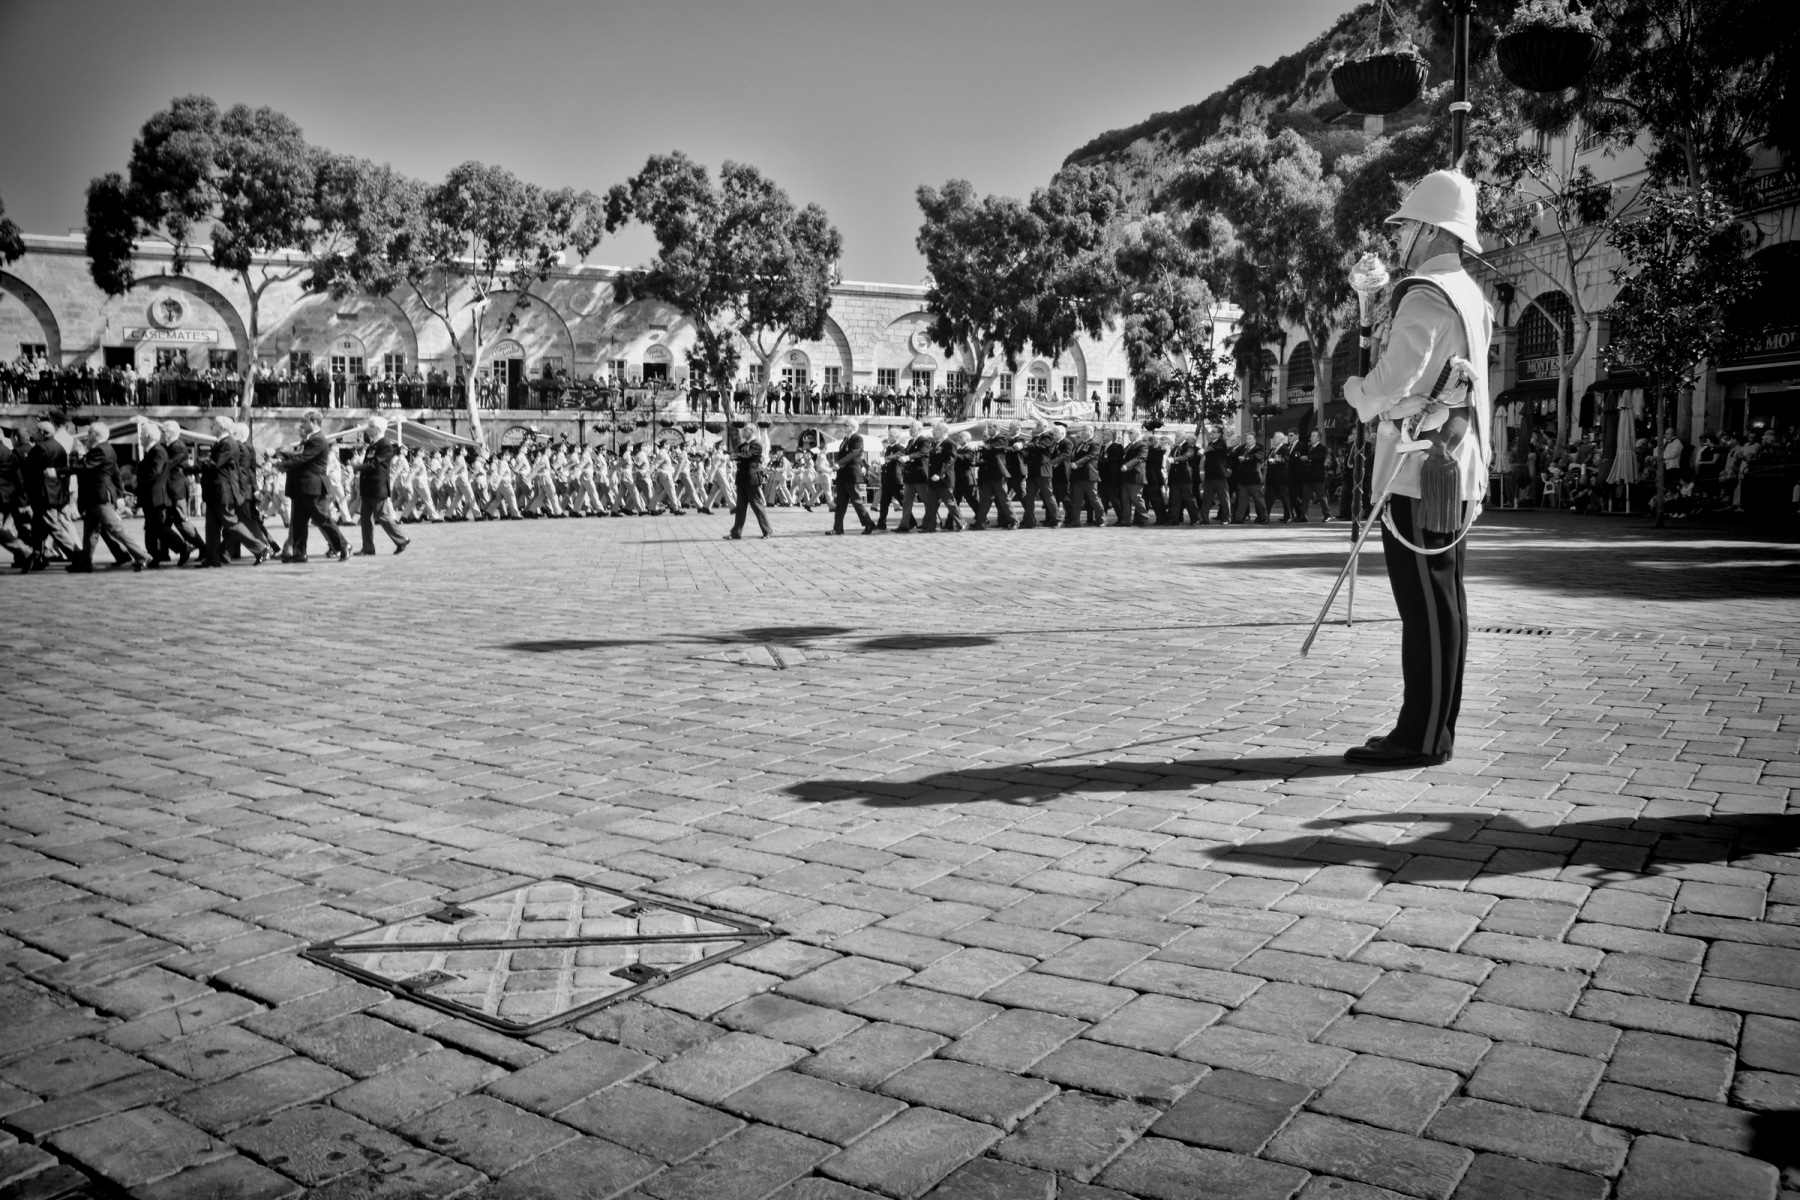 regiment-freedom-of-city-0212-bw_15436771021_o